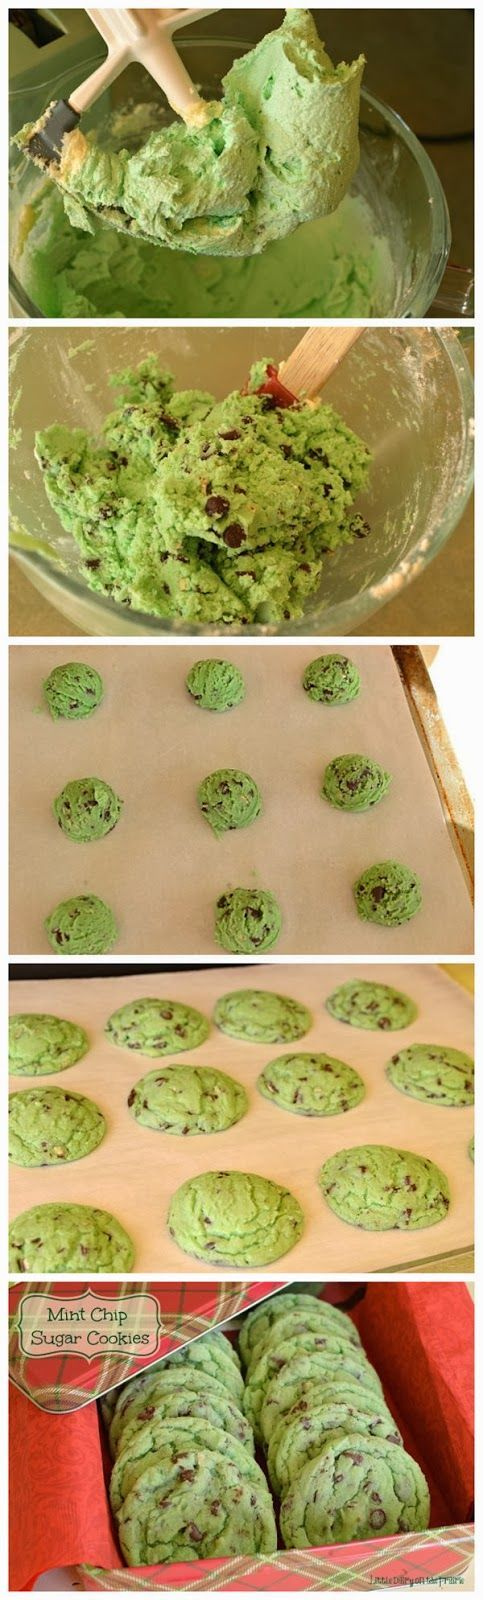 Mint Chocolate Chip Sugar Cookies - perfect for St Paddy's Day!